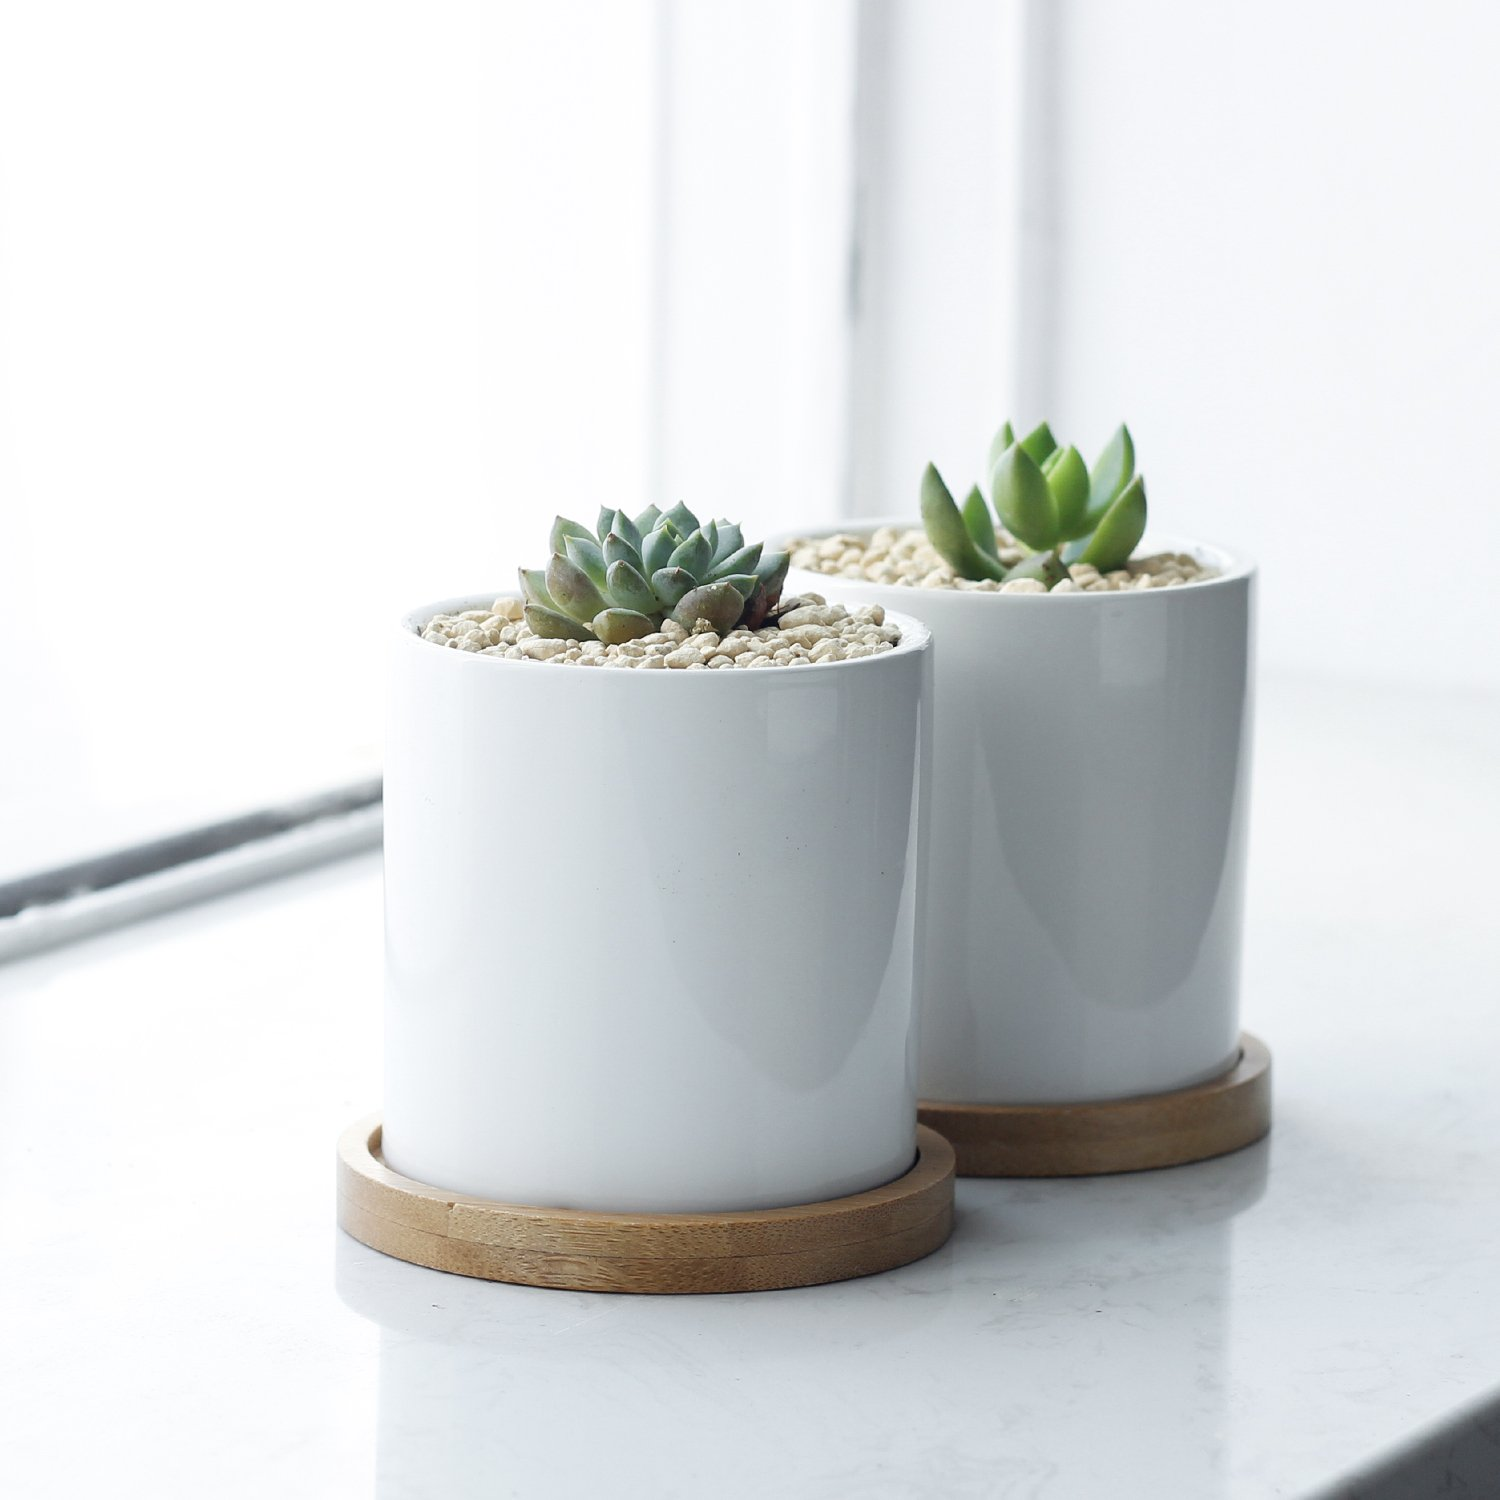 Greenaholics Succulent Plant Pots - 3 Inch Ceramic Cylindrical Containers, Small Cactus Planters, Flower Pots with Drainage Hole, Bamboo Tray, Set of 2, White by Greenaholics (Image #4)